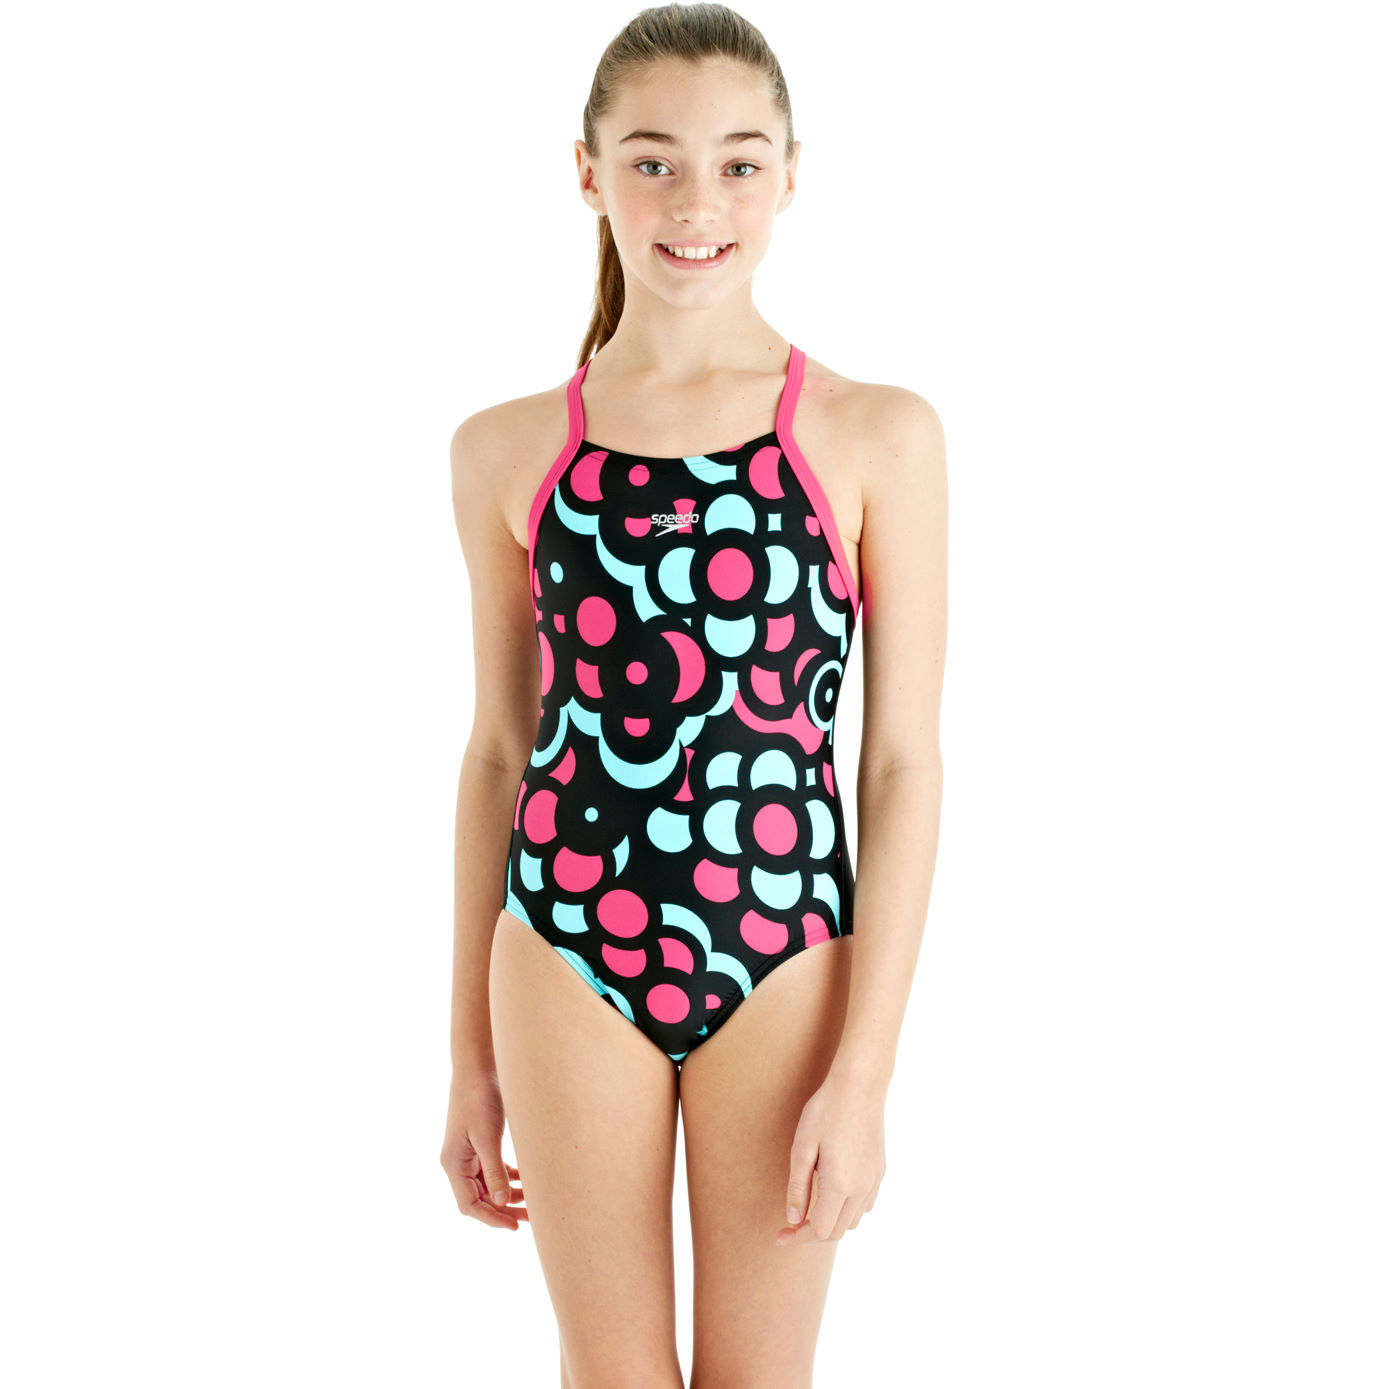 13 year old girl in speedo images